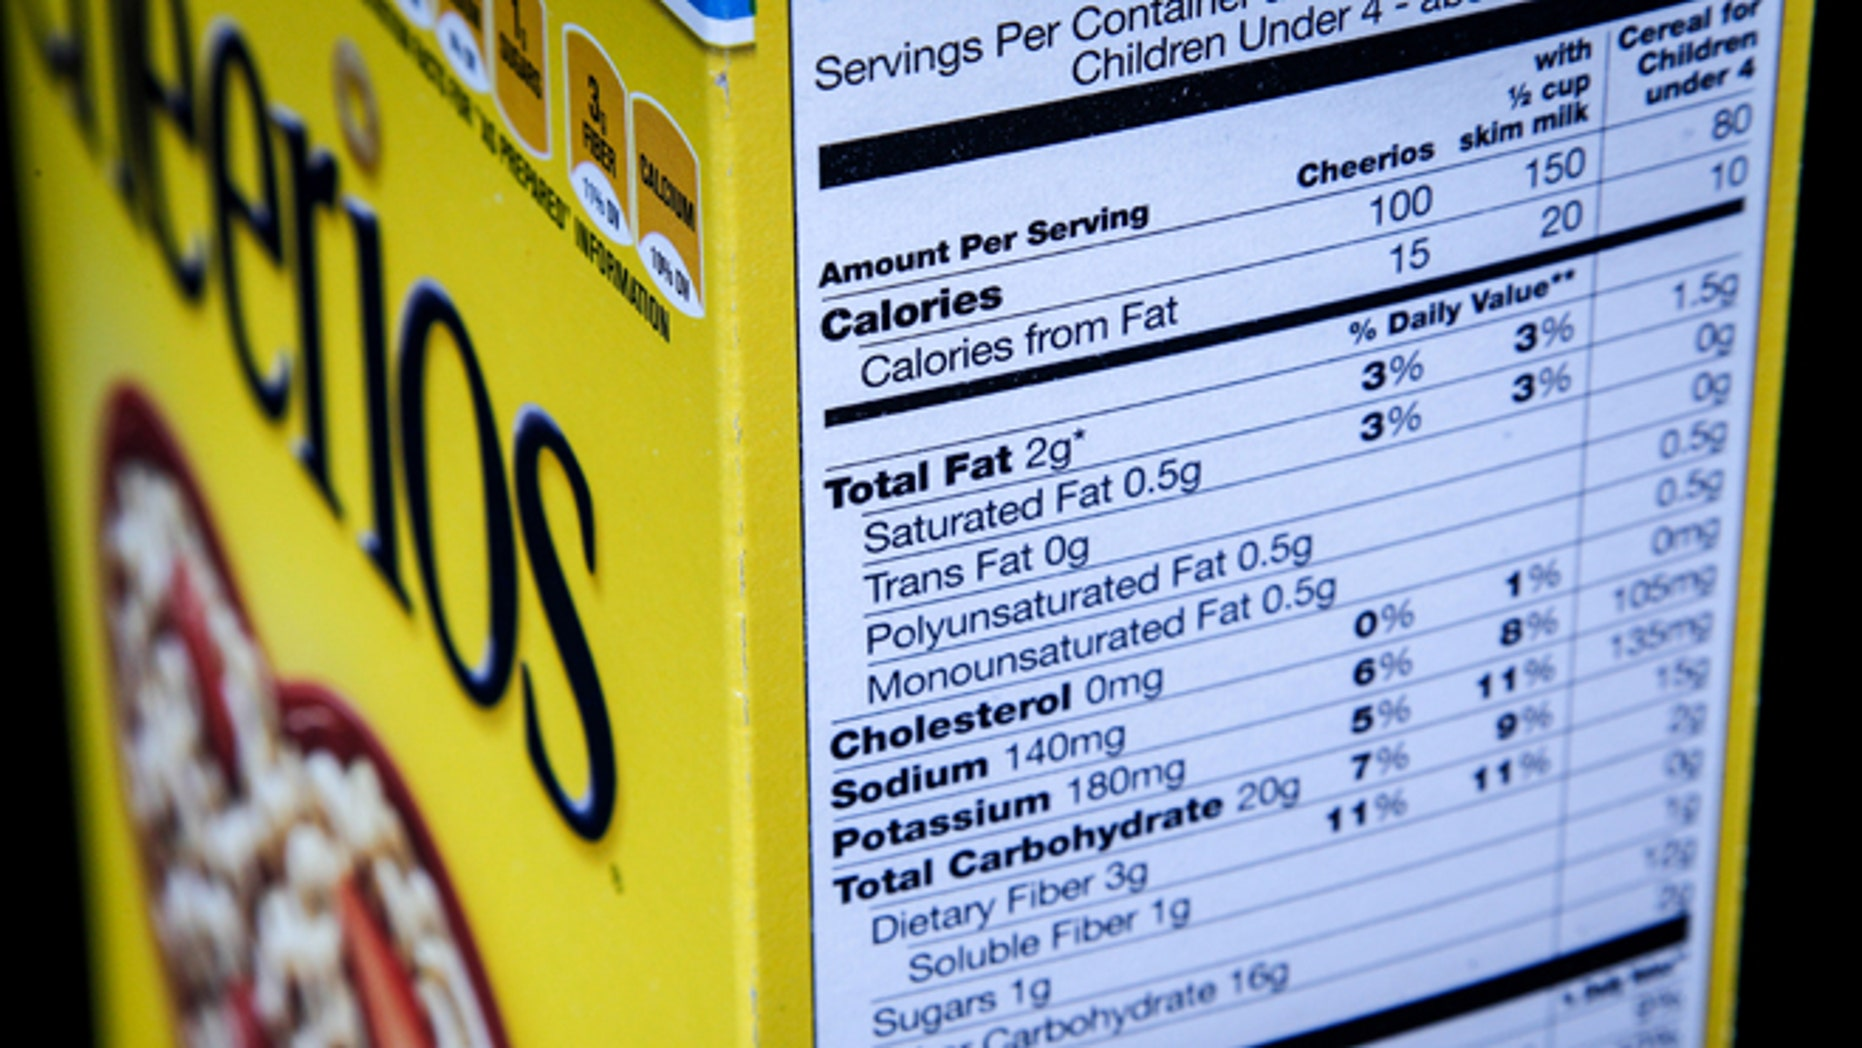 The nutrition facts label on the side of a cereal box is photographed in Washington, Thursday, Jan. 23, 2014. Nutrition labels on the back of food packages may soon become easier to read. The Food and Drug Administration (FDA) says knowledge about nutrition has evolved over the last 20 years, and the labels need to reflect that. (AP Photo/J. David Ake)